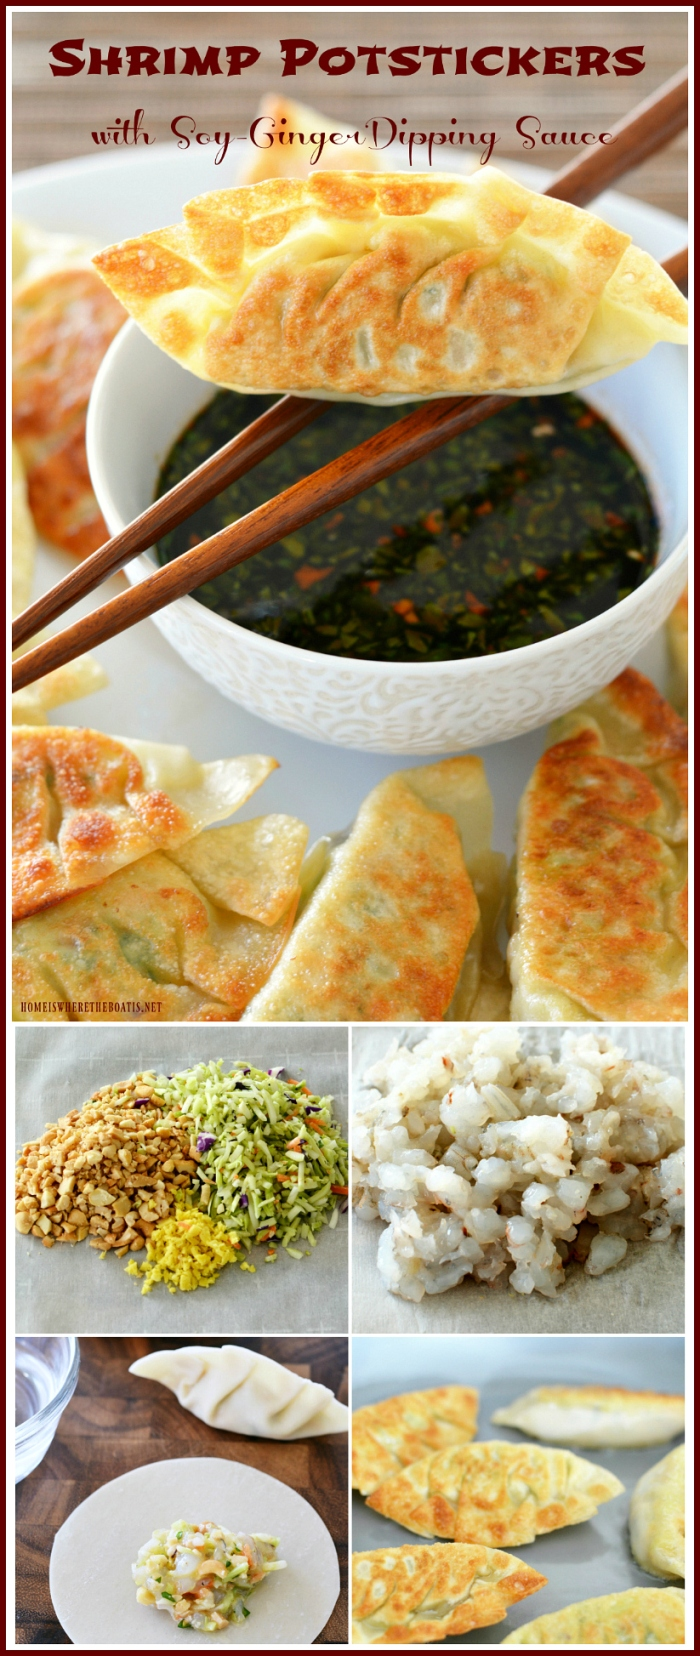 Shrimp Potstickers with Soy-Ginger DippingSauce | ©homeiswheretheboatis.net